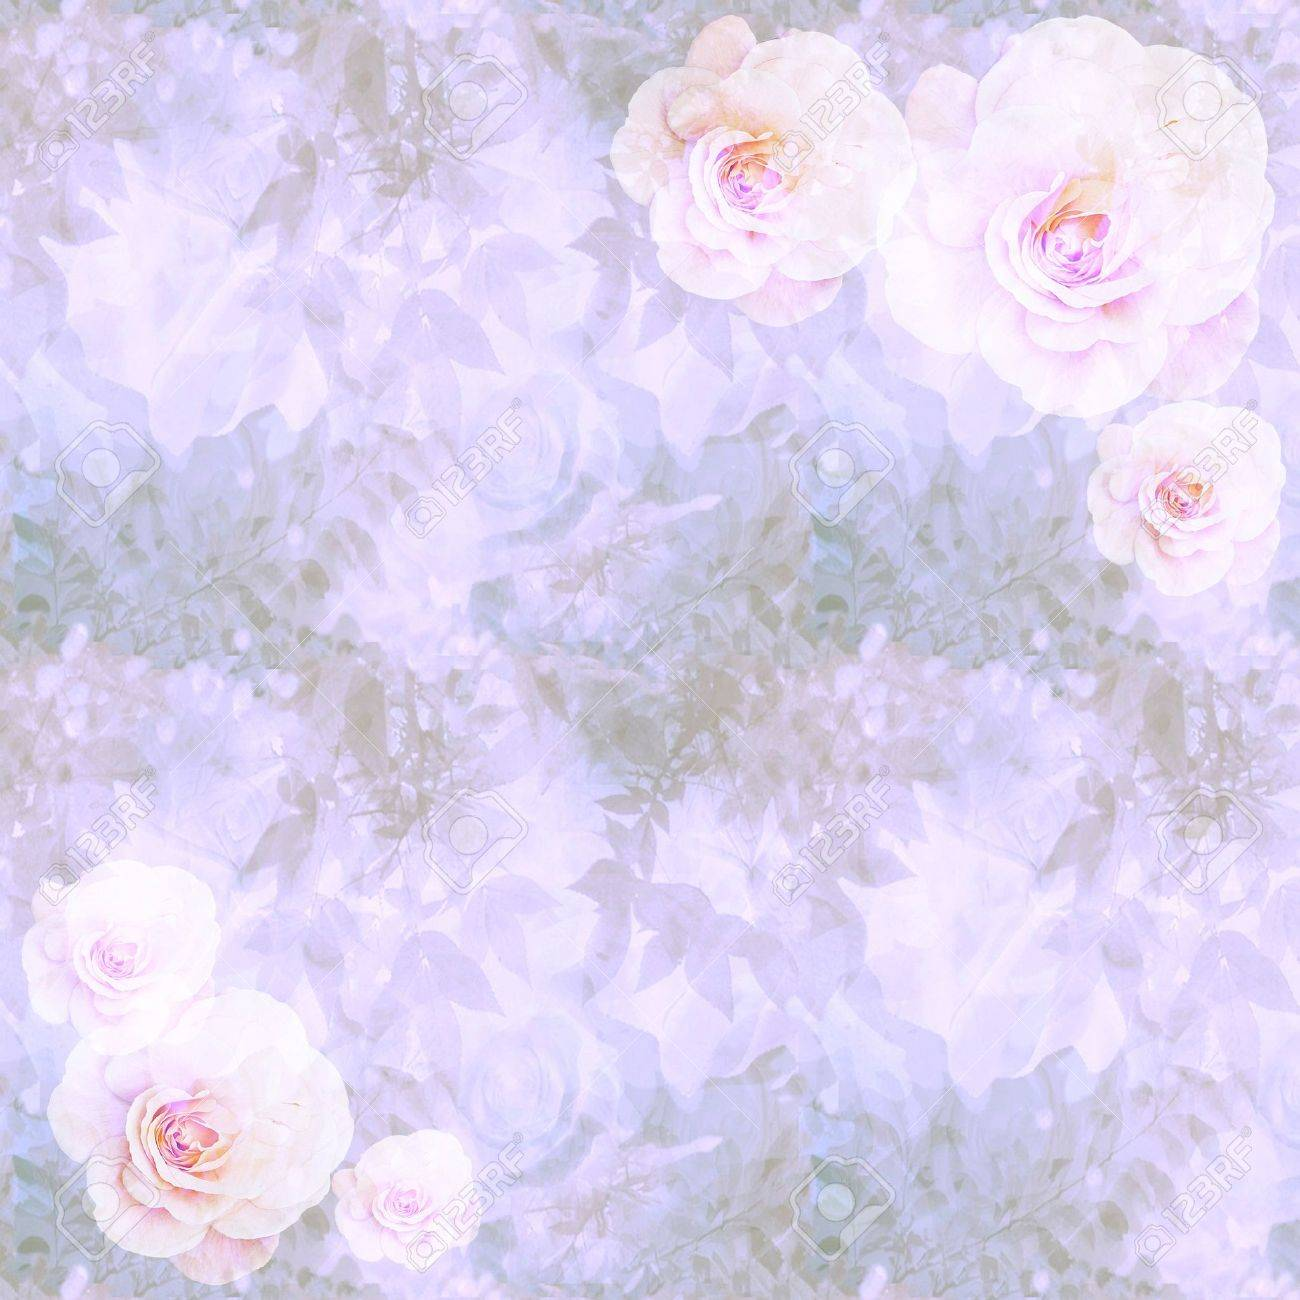 Victorian romantic wallpaper with pink roses, branches and foliage Stock Photo - 14267420